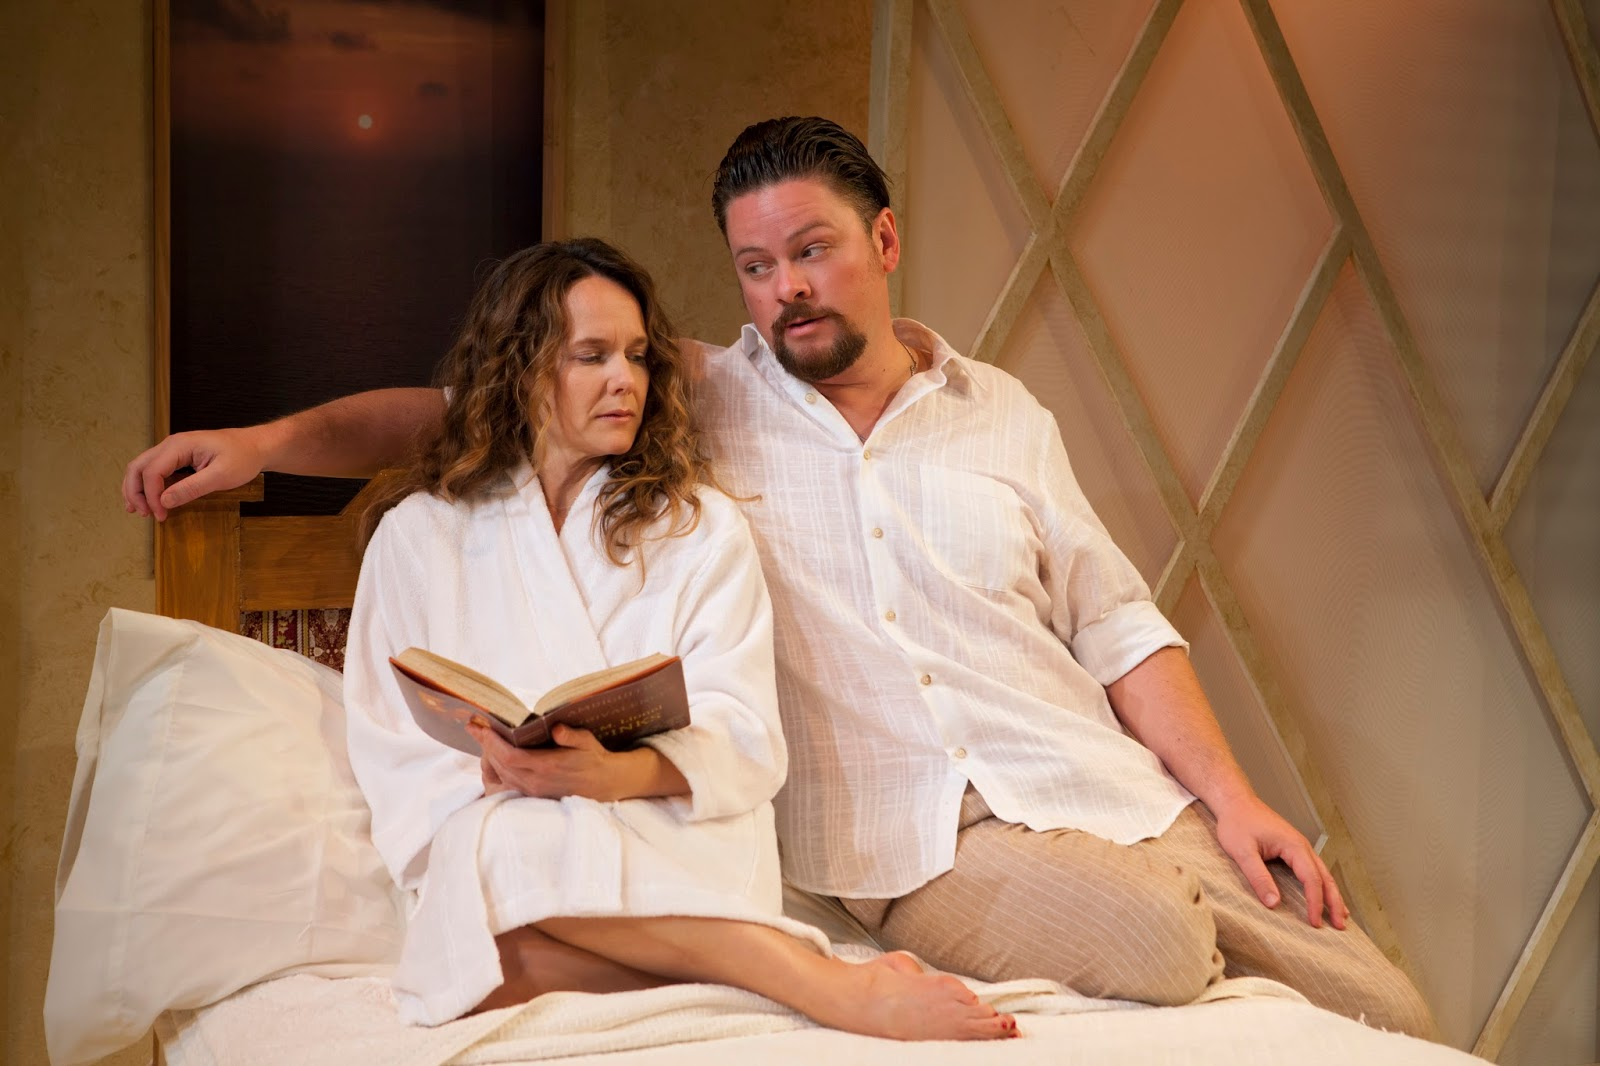 essays on betrayal pinter Betrayal is a play about a woman, emma, who is cheating on her husband, robert, with his best friend, jerry ok, so the story's been done before, but pinter gives it his signature twist and has a way of making the characters very, very uncomfortable.